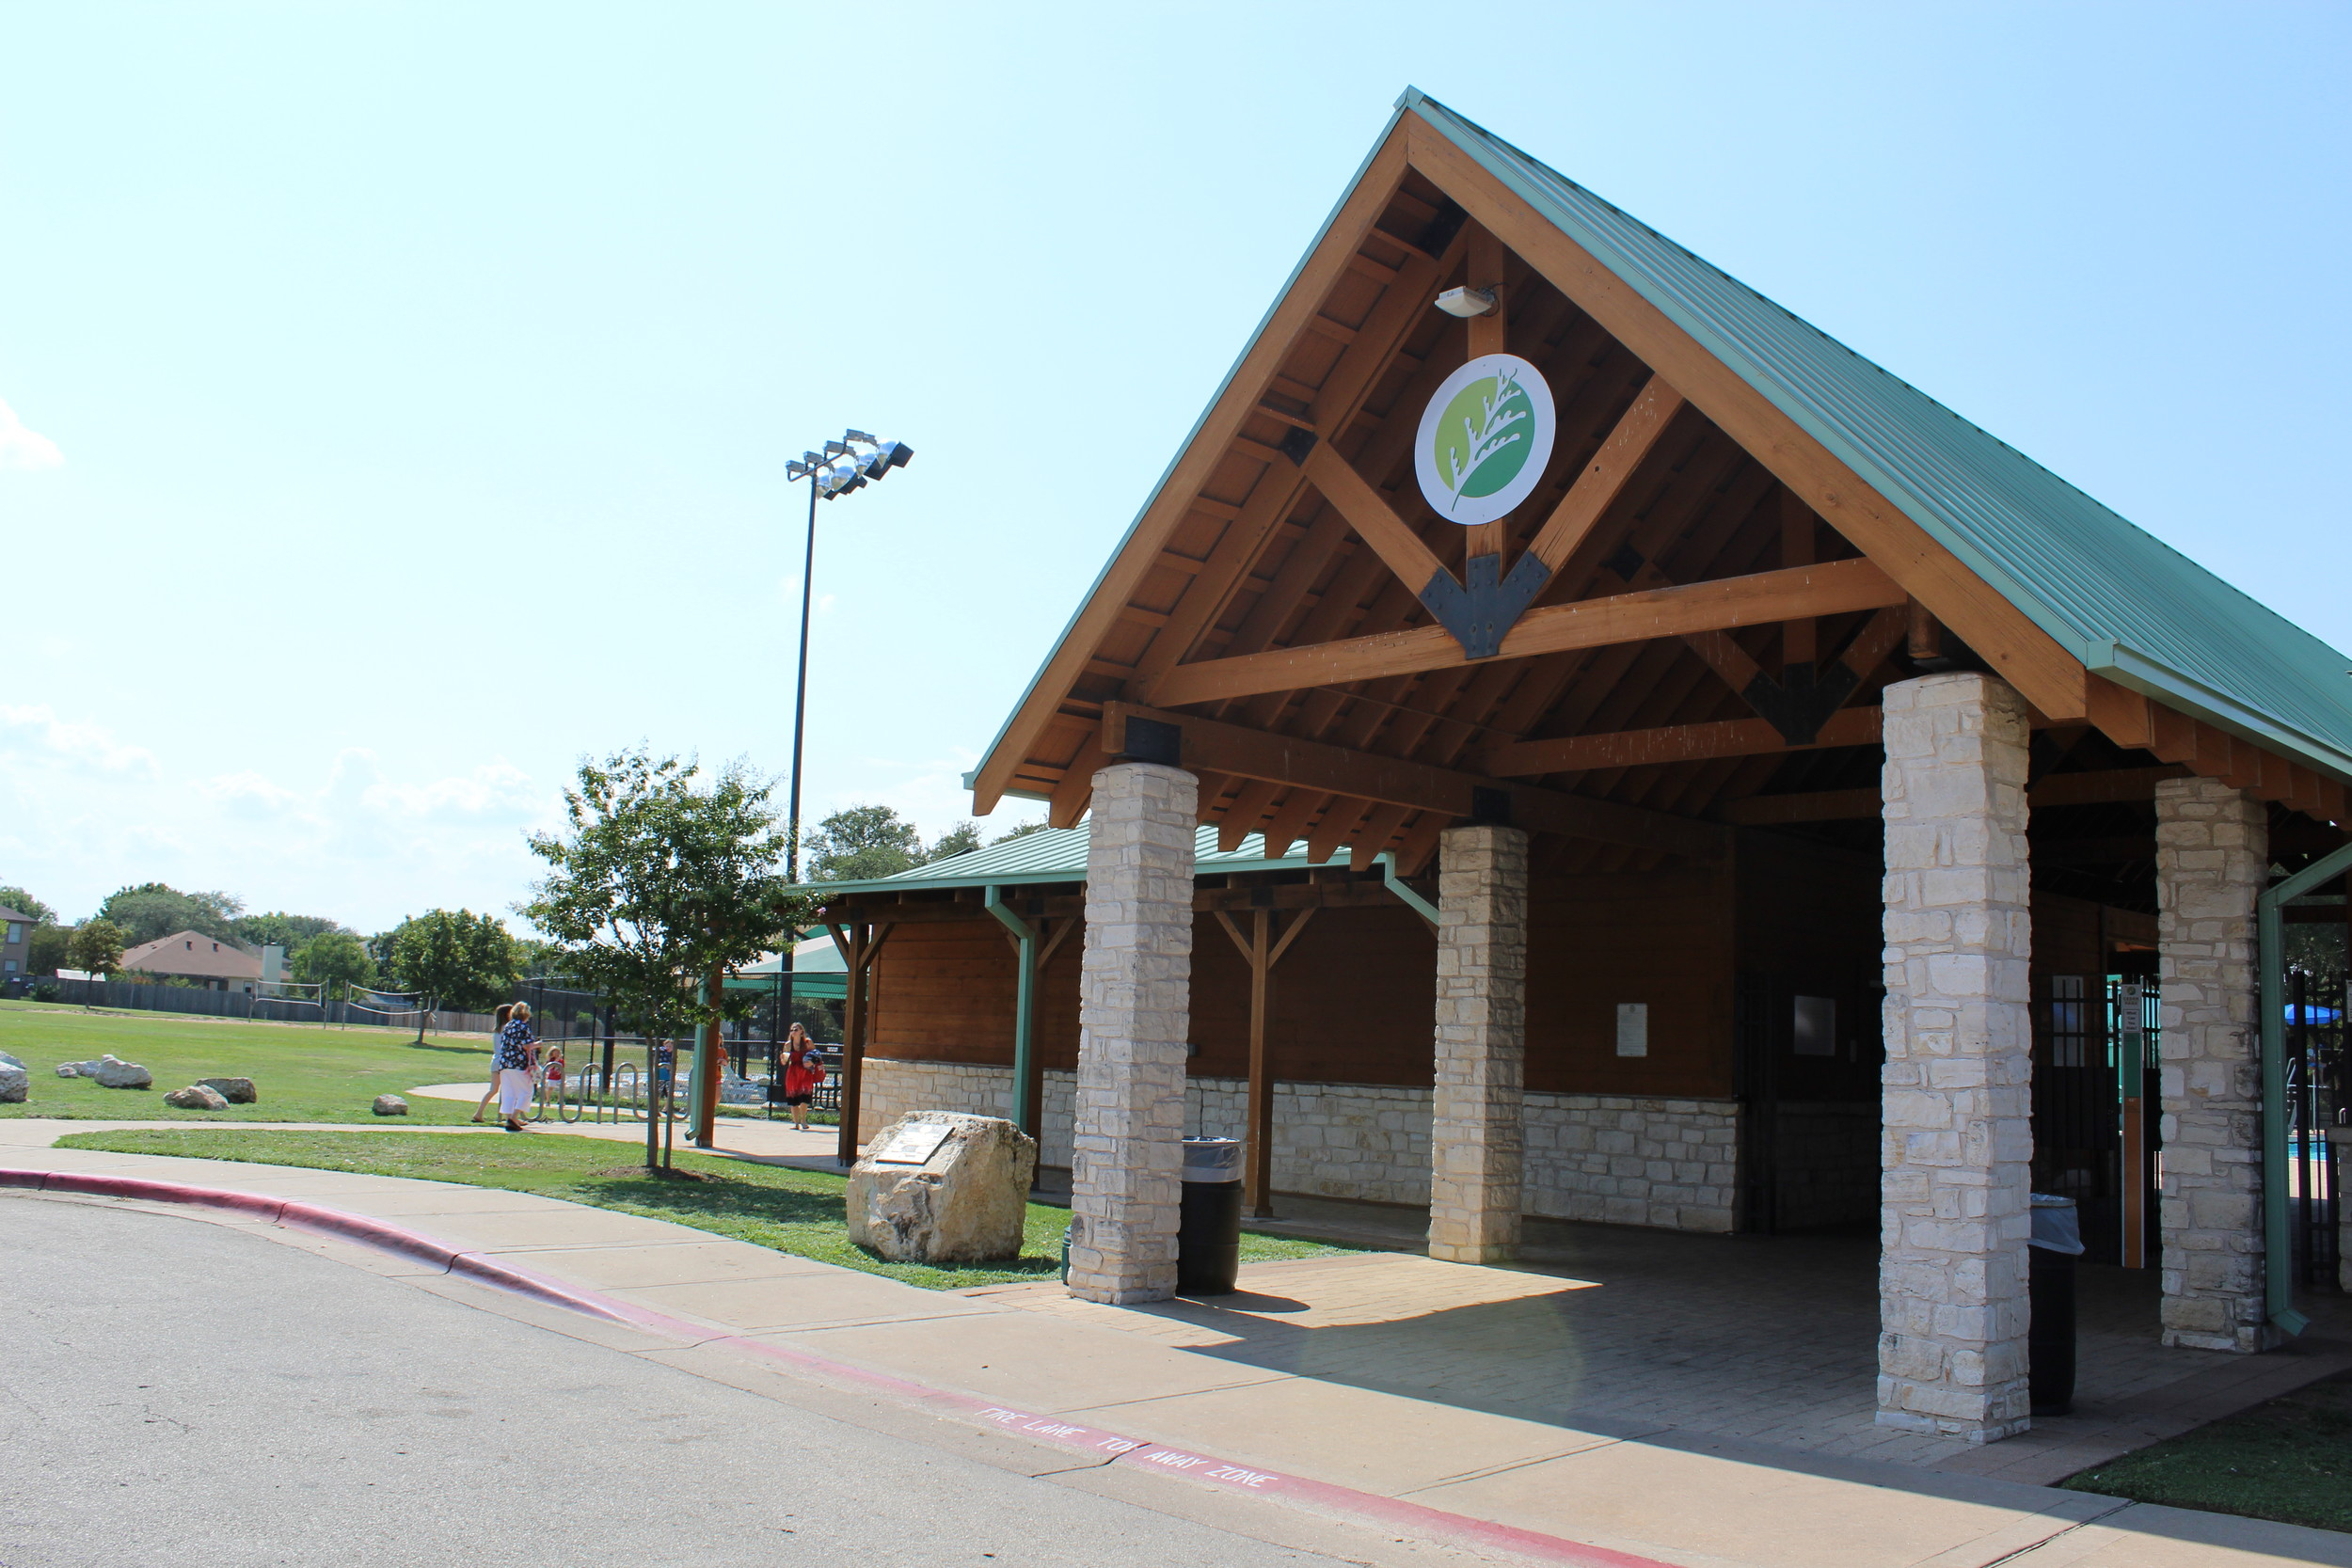 Free public WiFi is now available at Elizabeth Milburn Park in Cedar Park.